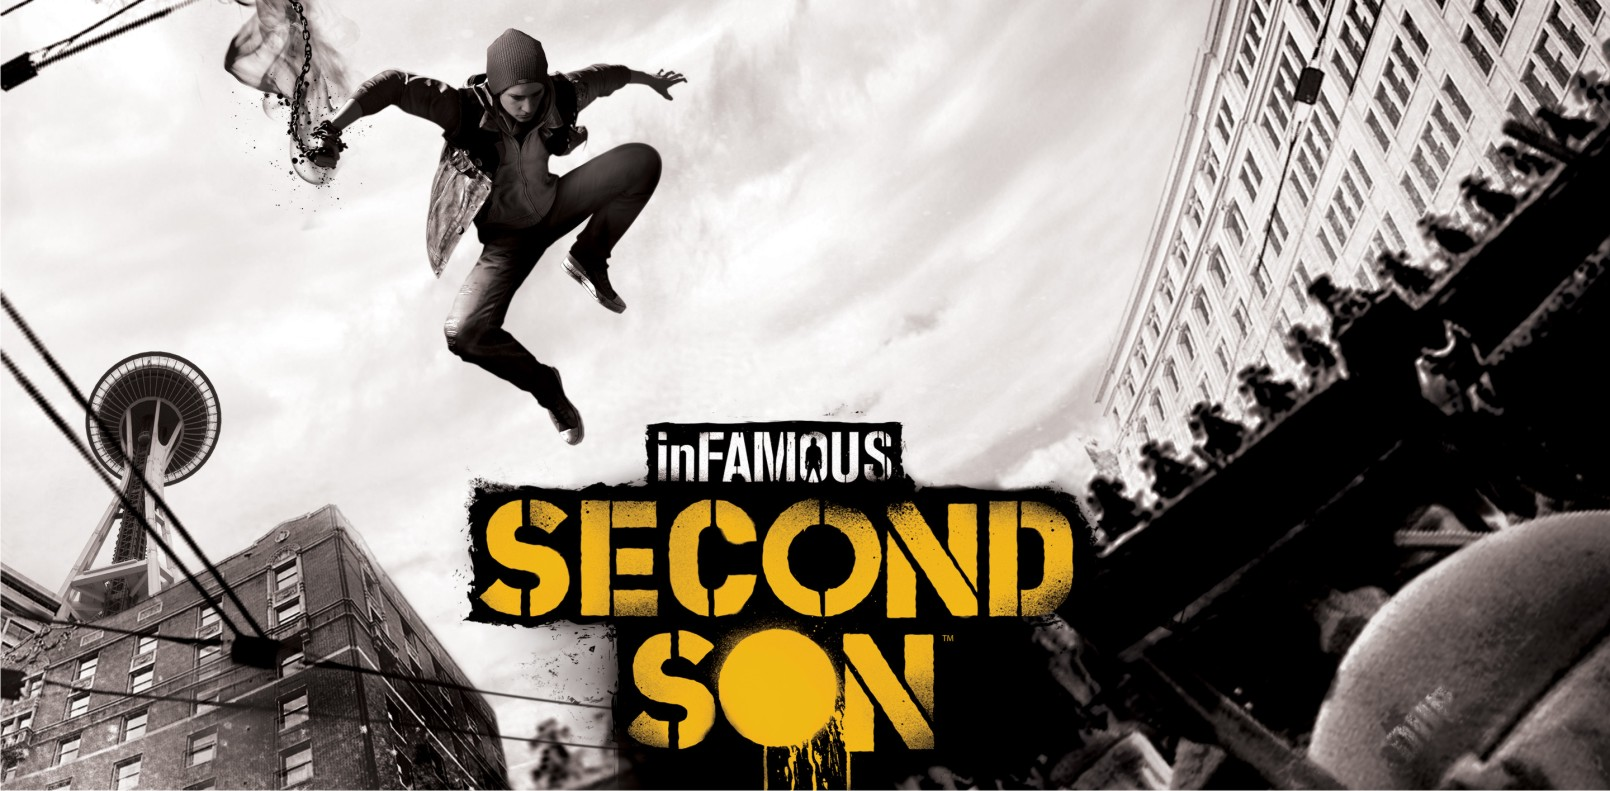 inFAMOUS second sone releases for Playstation 4